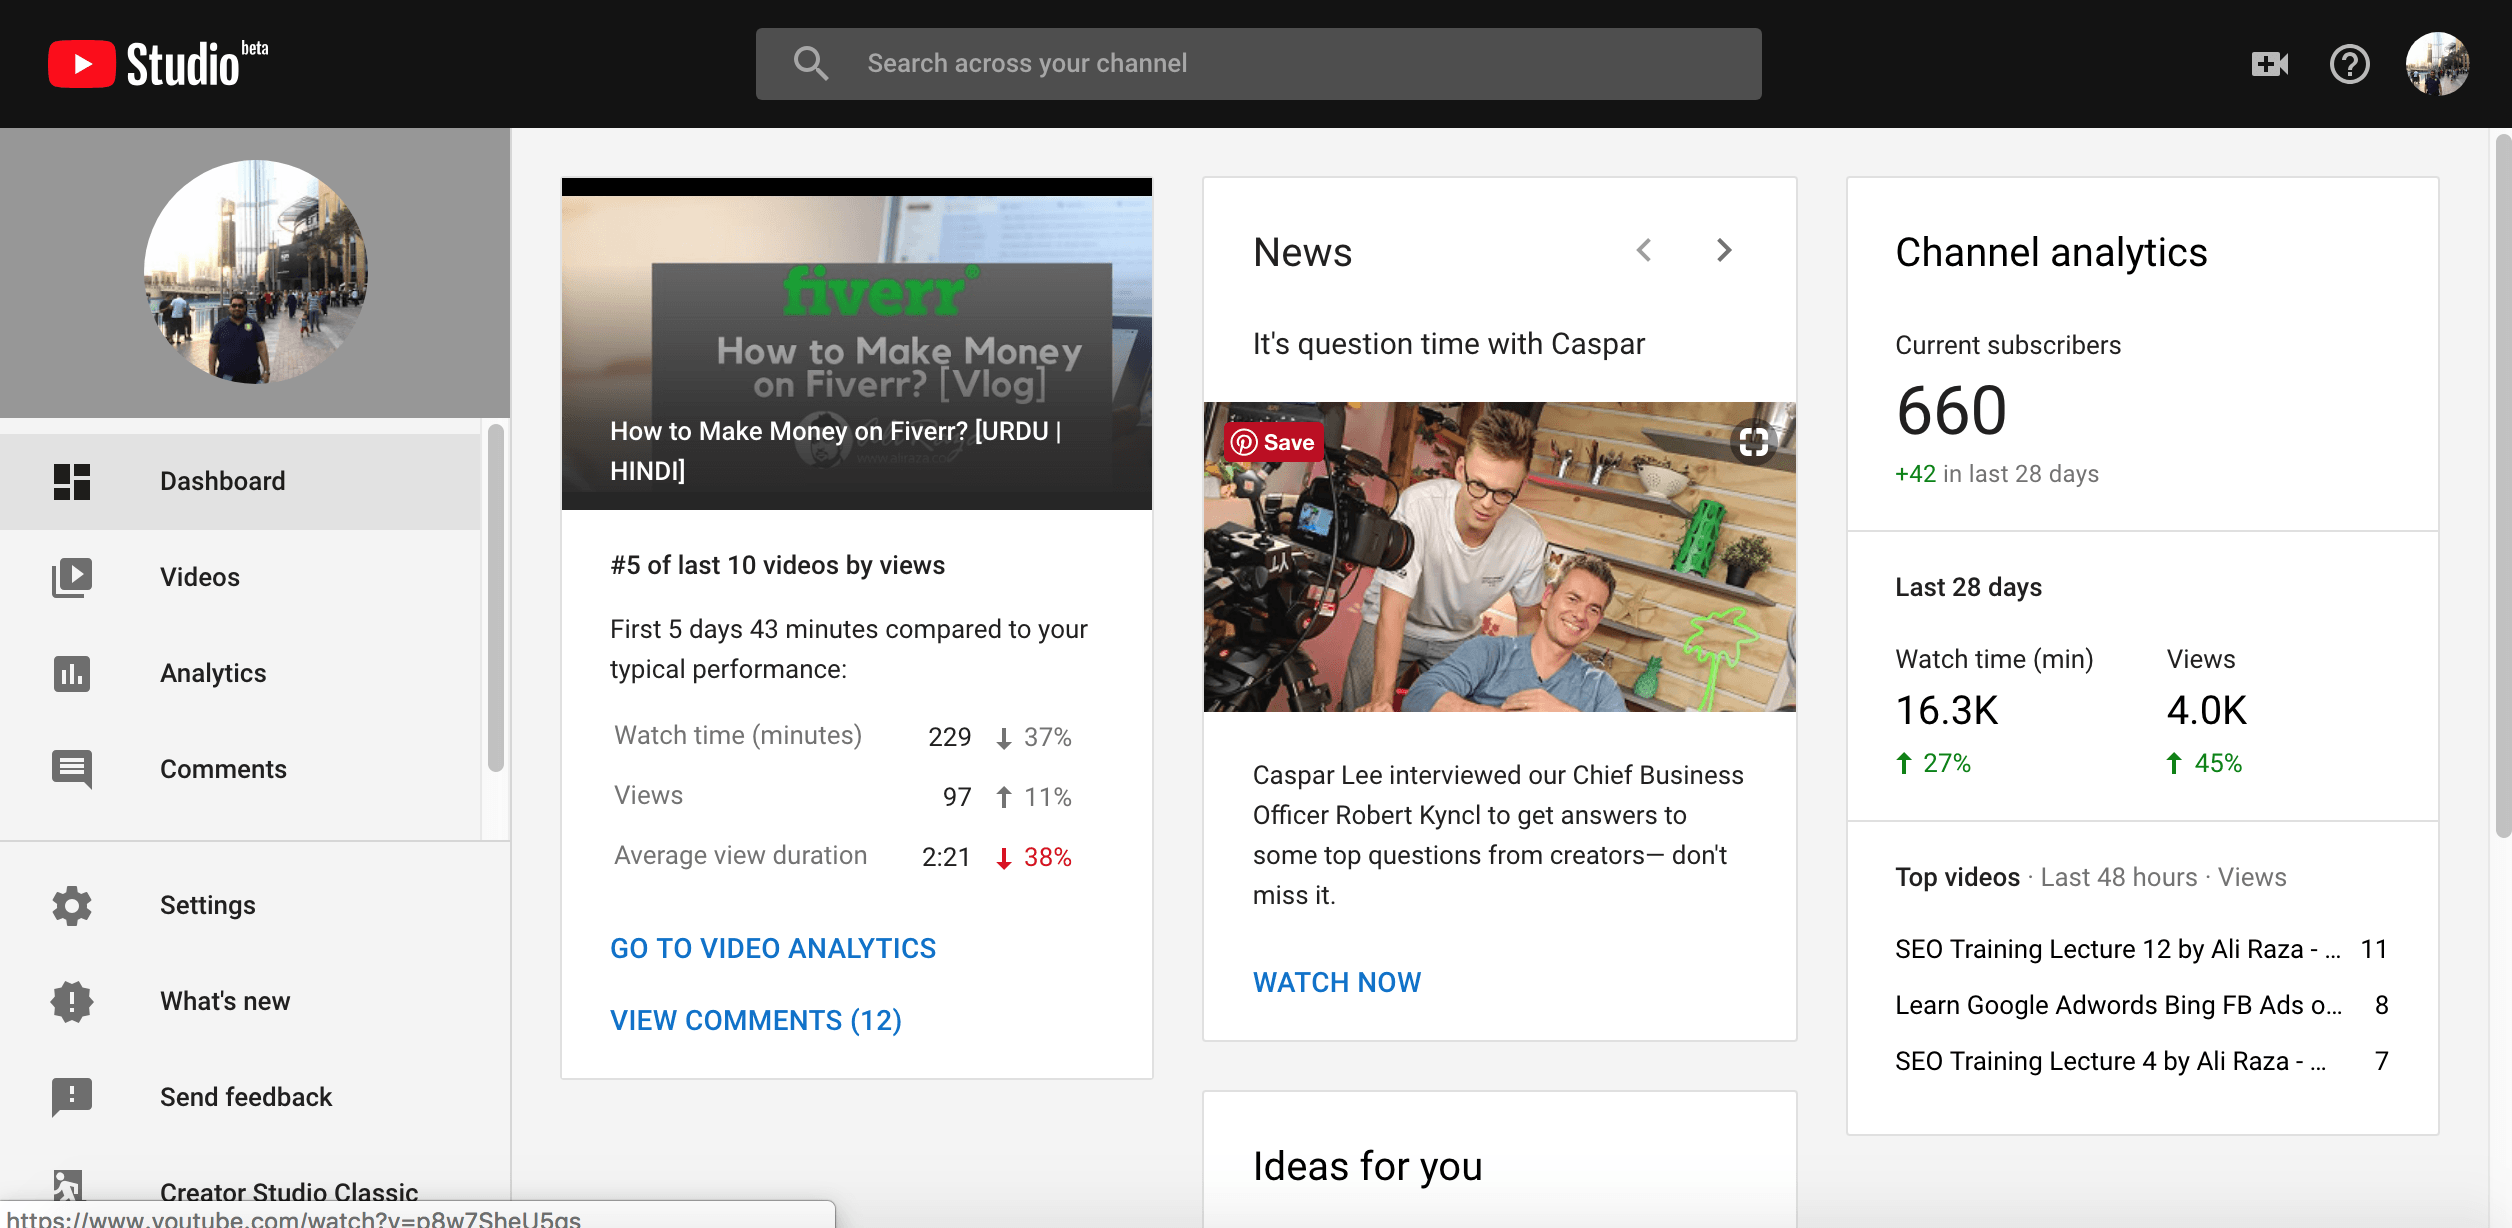 youtube studio beta